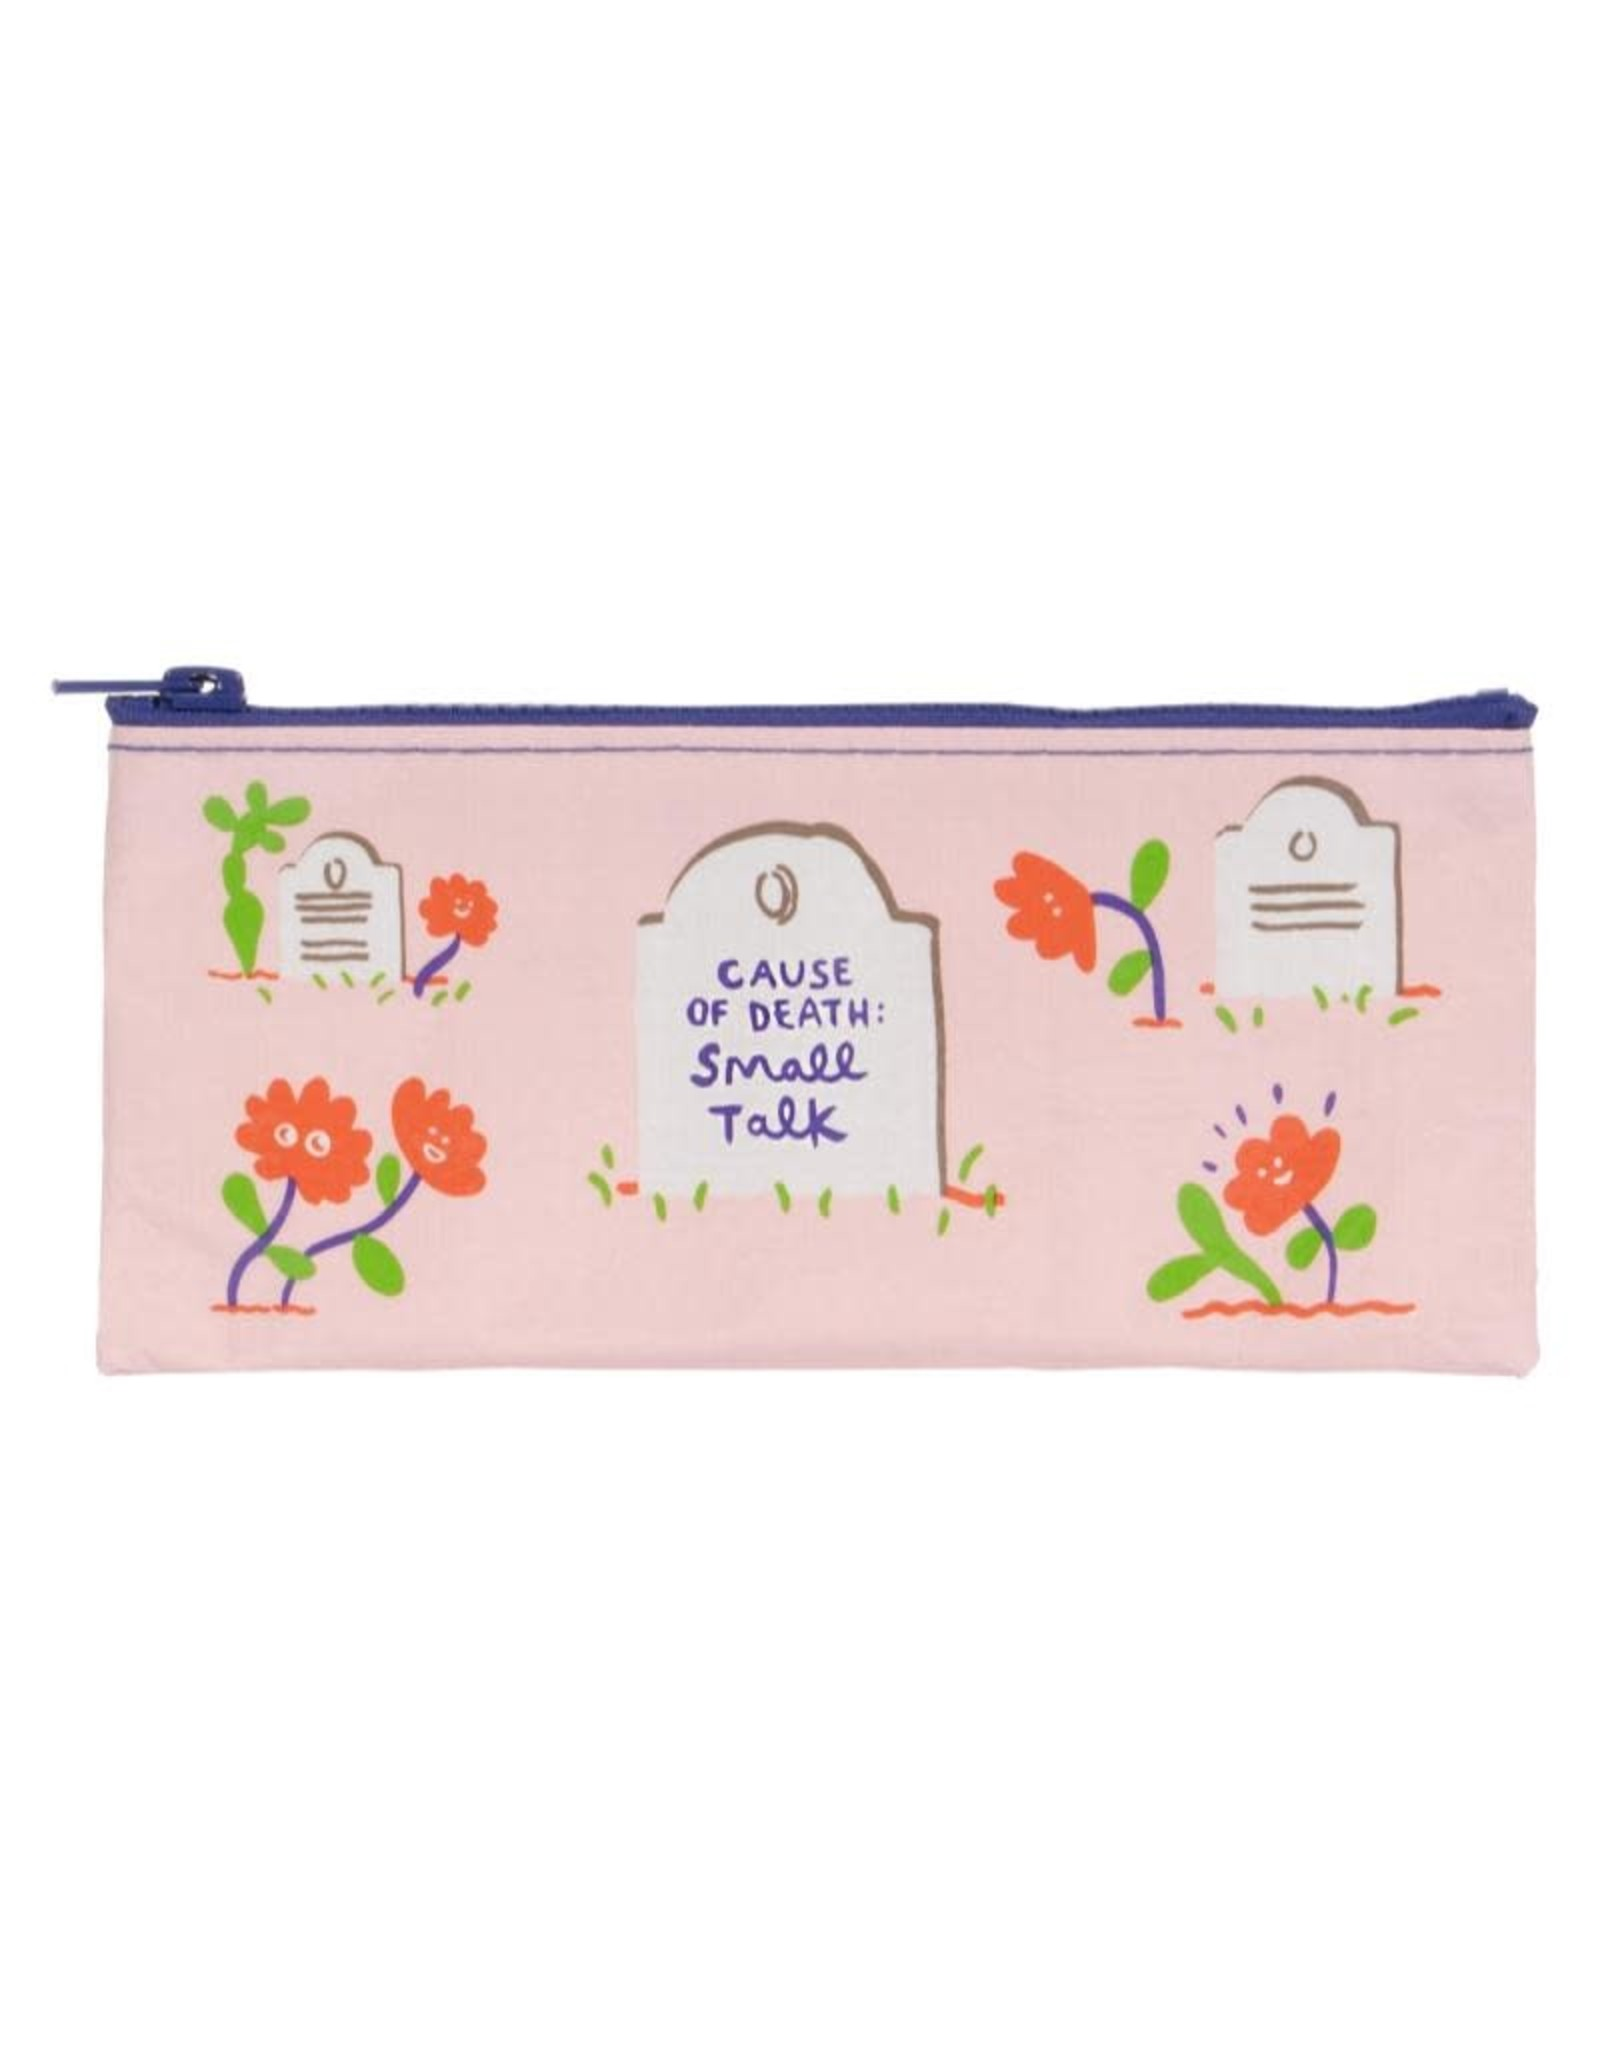 Blue Q Cause of Death: Small Talk Pencil Case